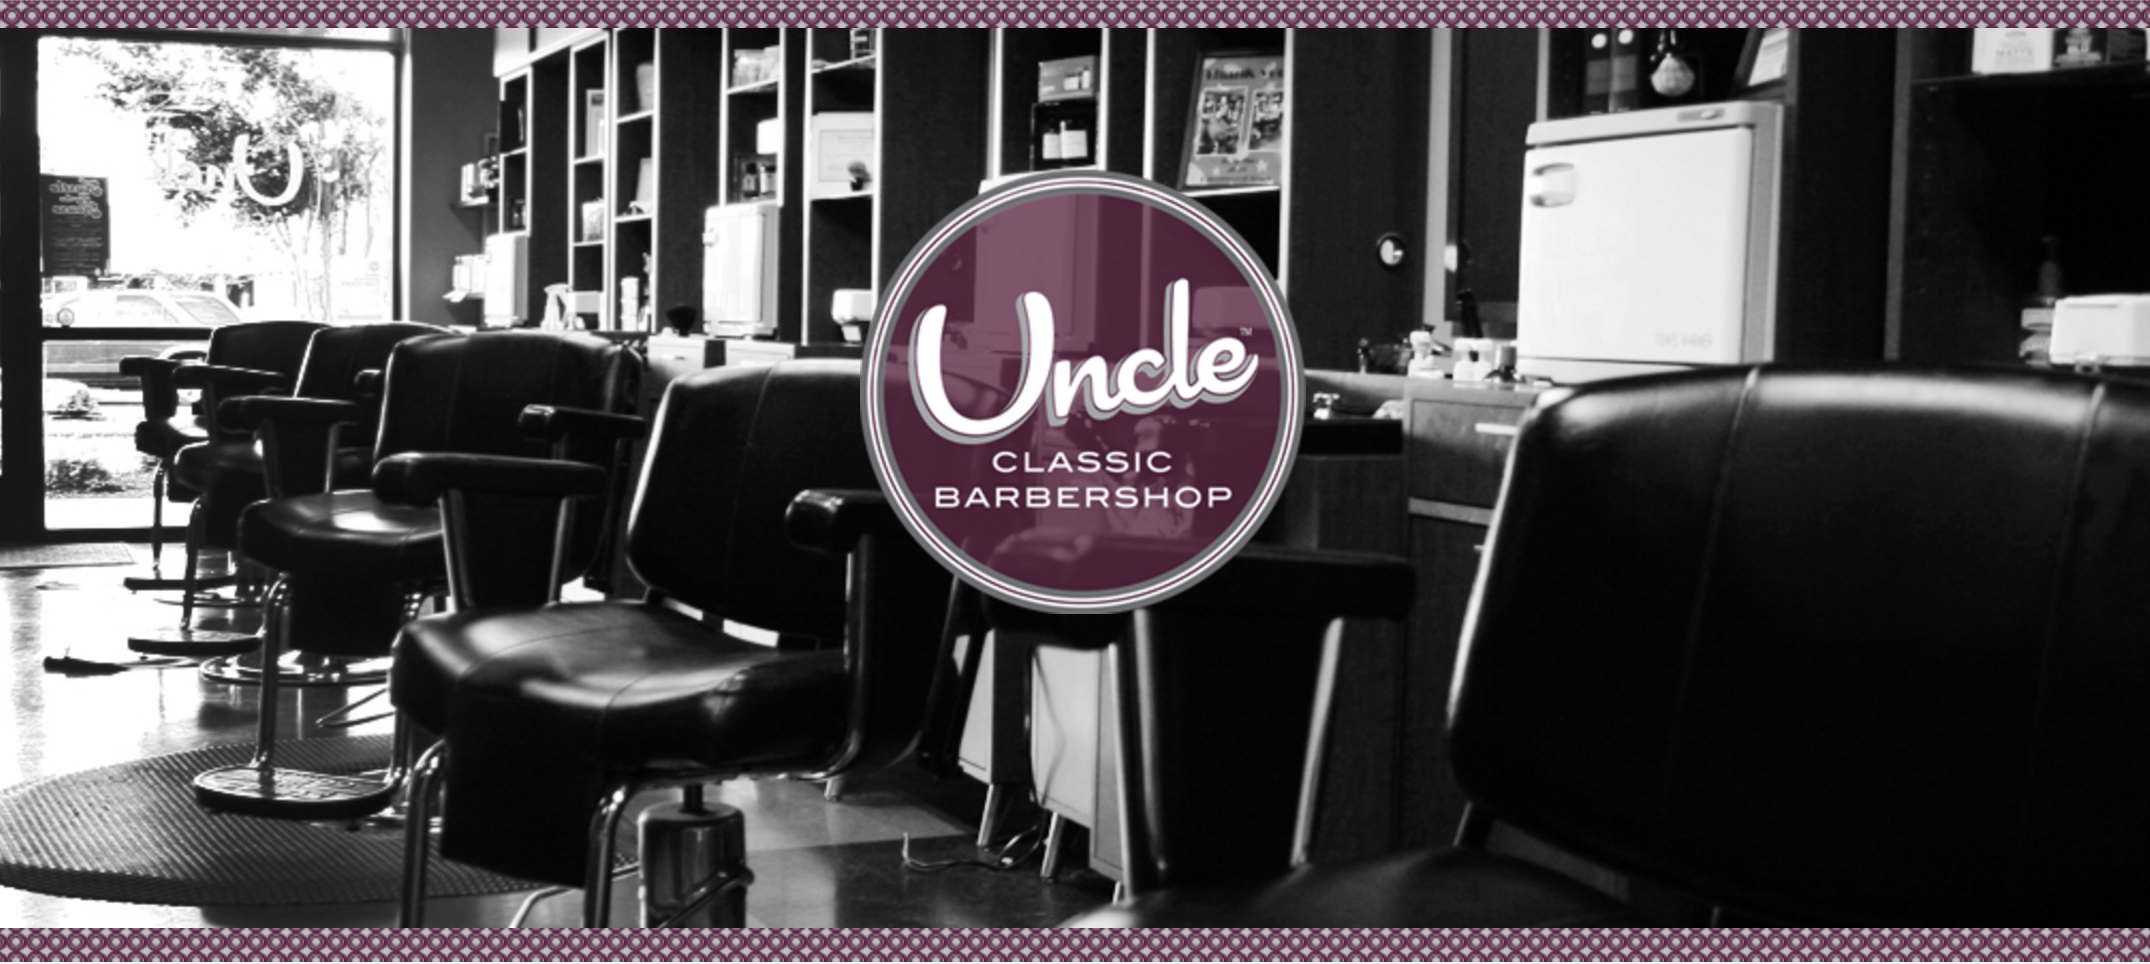 Uncle Classic Barbershop